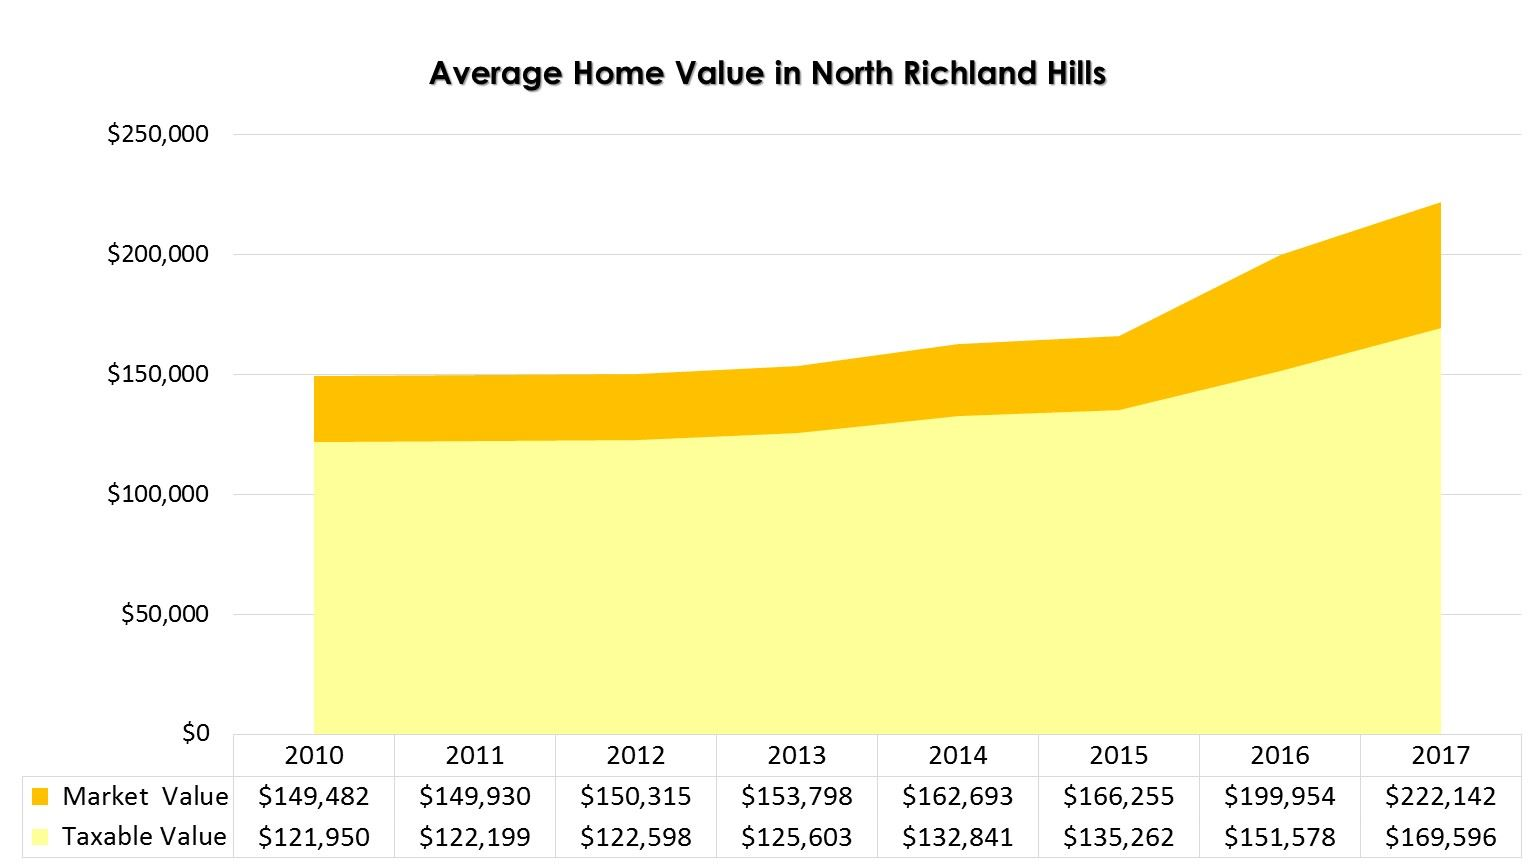 Average Home Value Increase